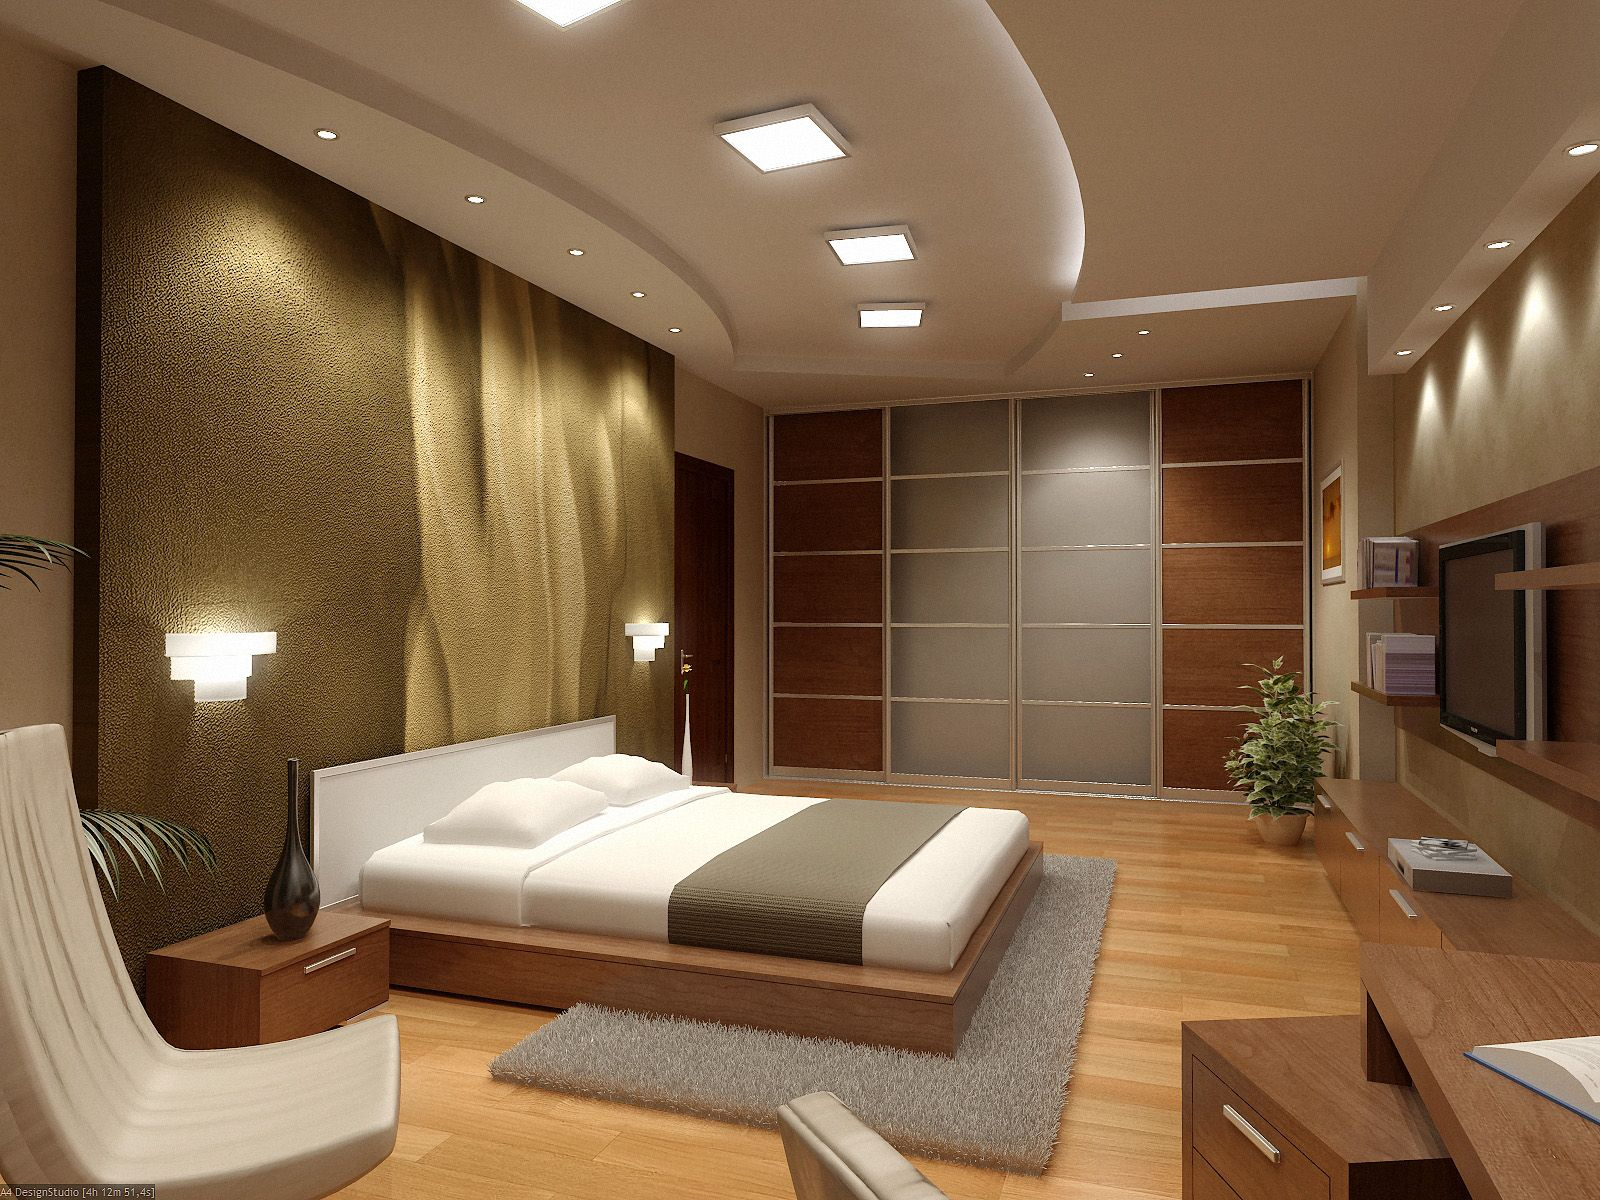 New home designs latest modern homes luxury interior for New bedroom designs pictures